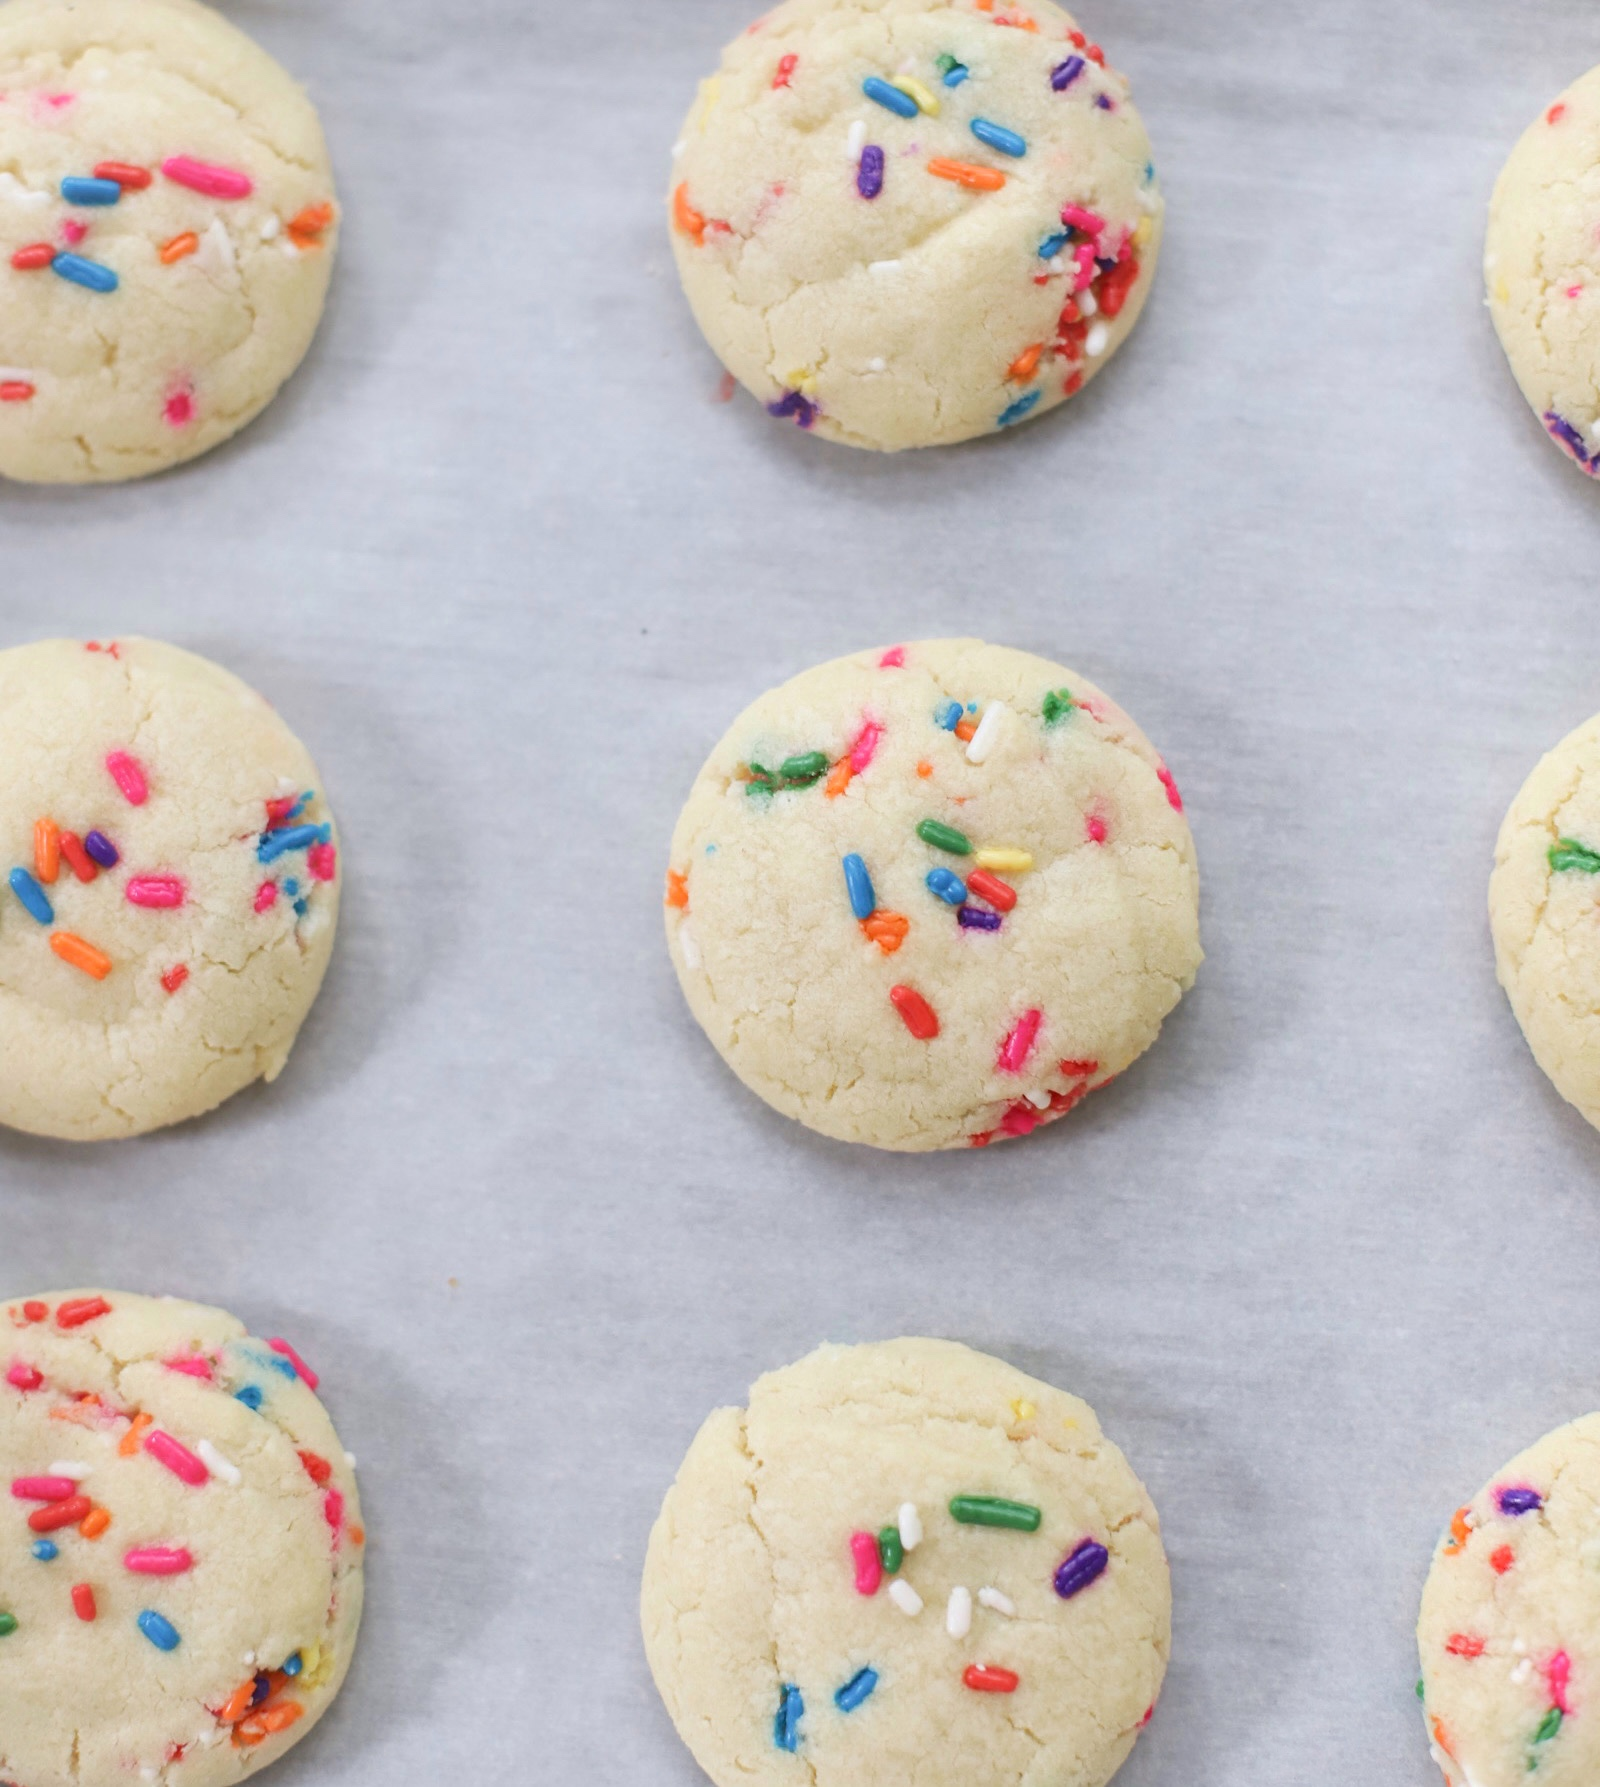 The softest sugar cookies with that perfect chewy center, packed with sprinkles on a baking pan